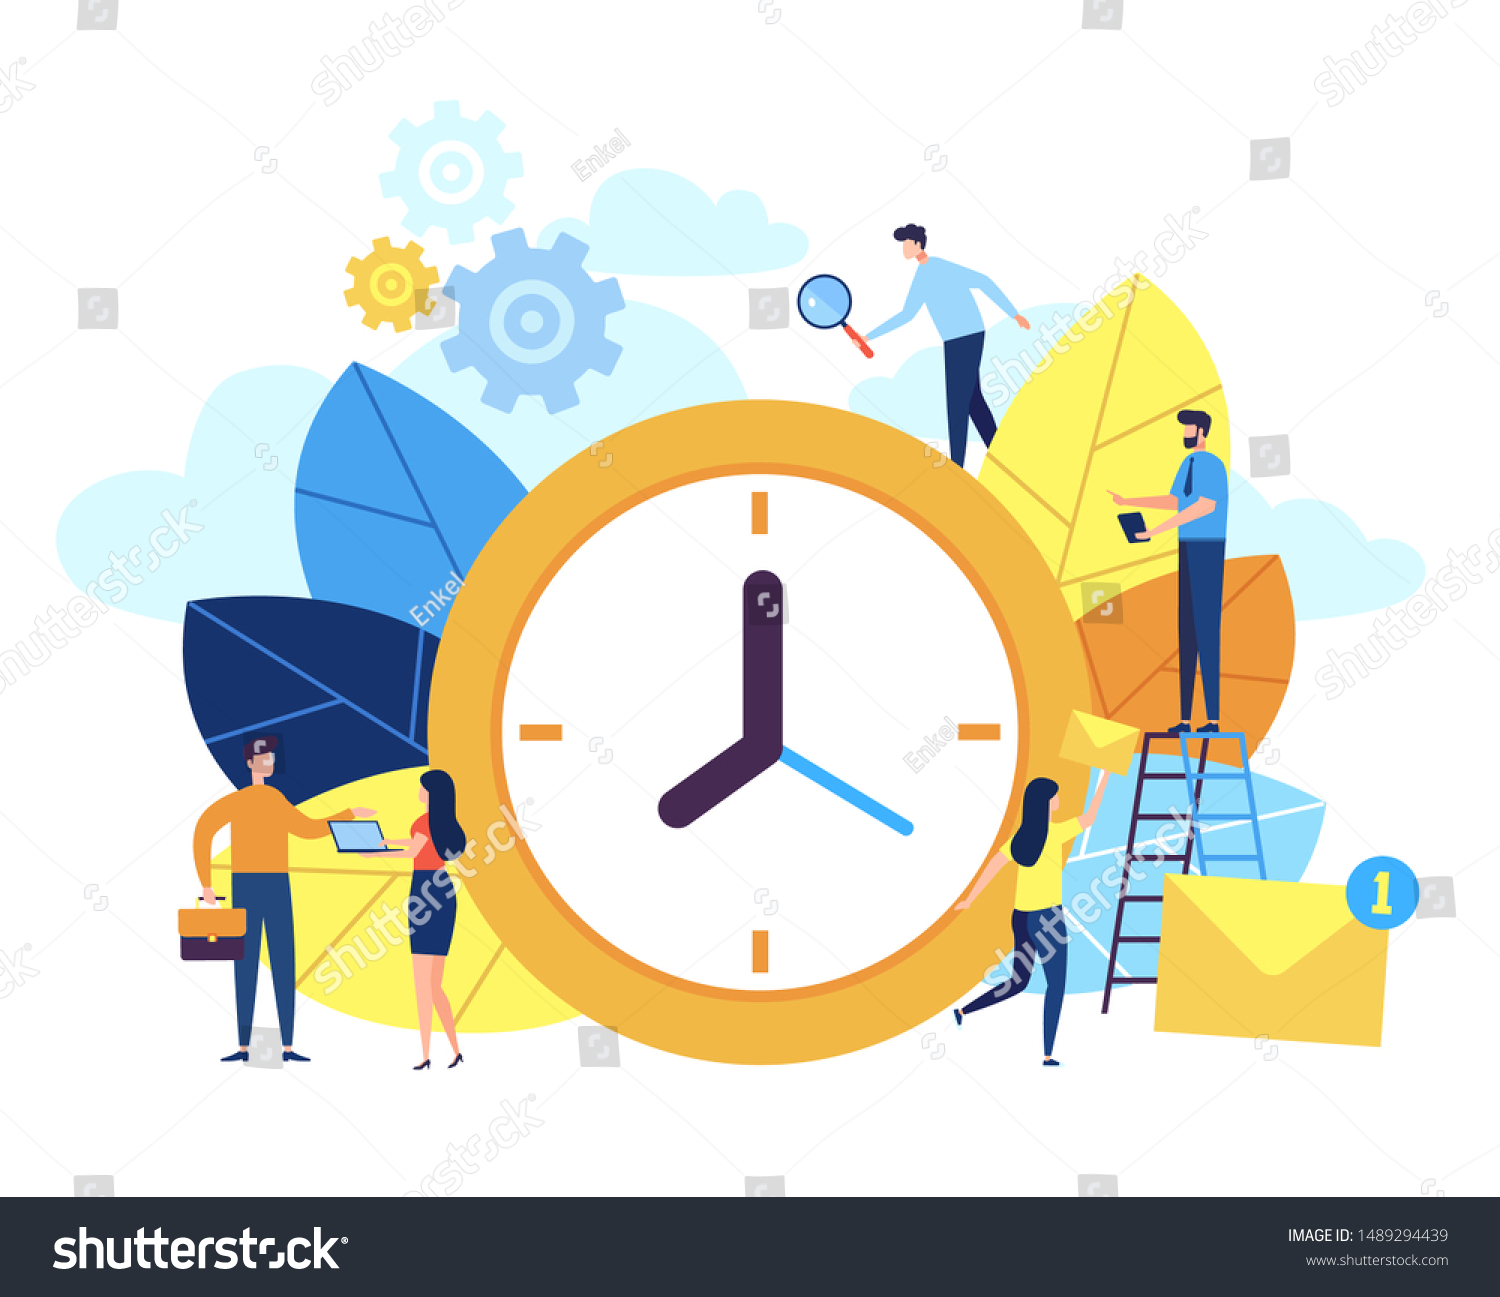 Concept Time Management Banner People Web Stock Vector Royalty Free 1489294439